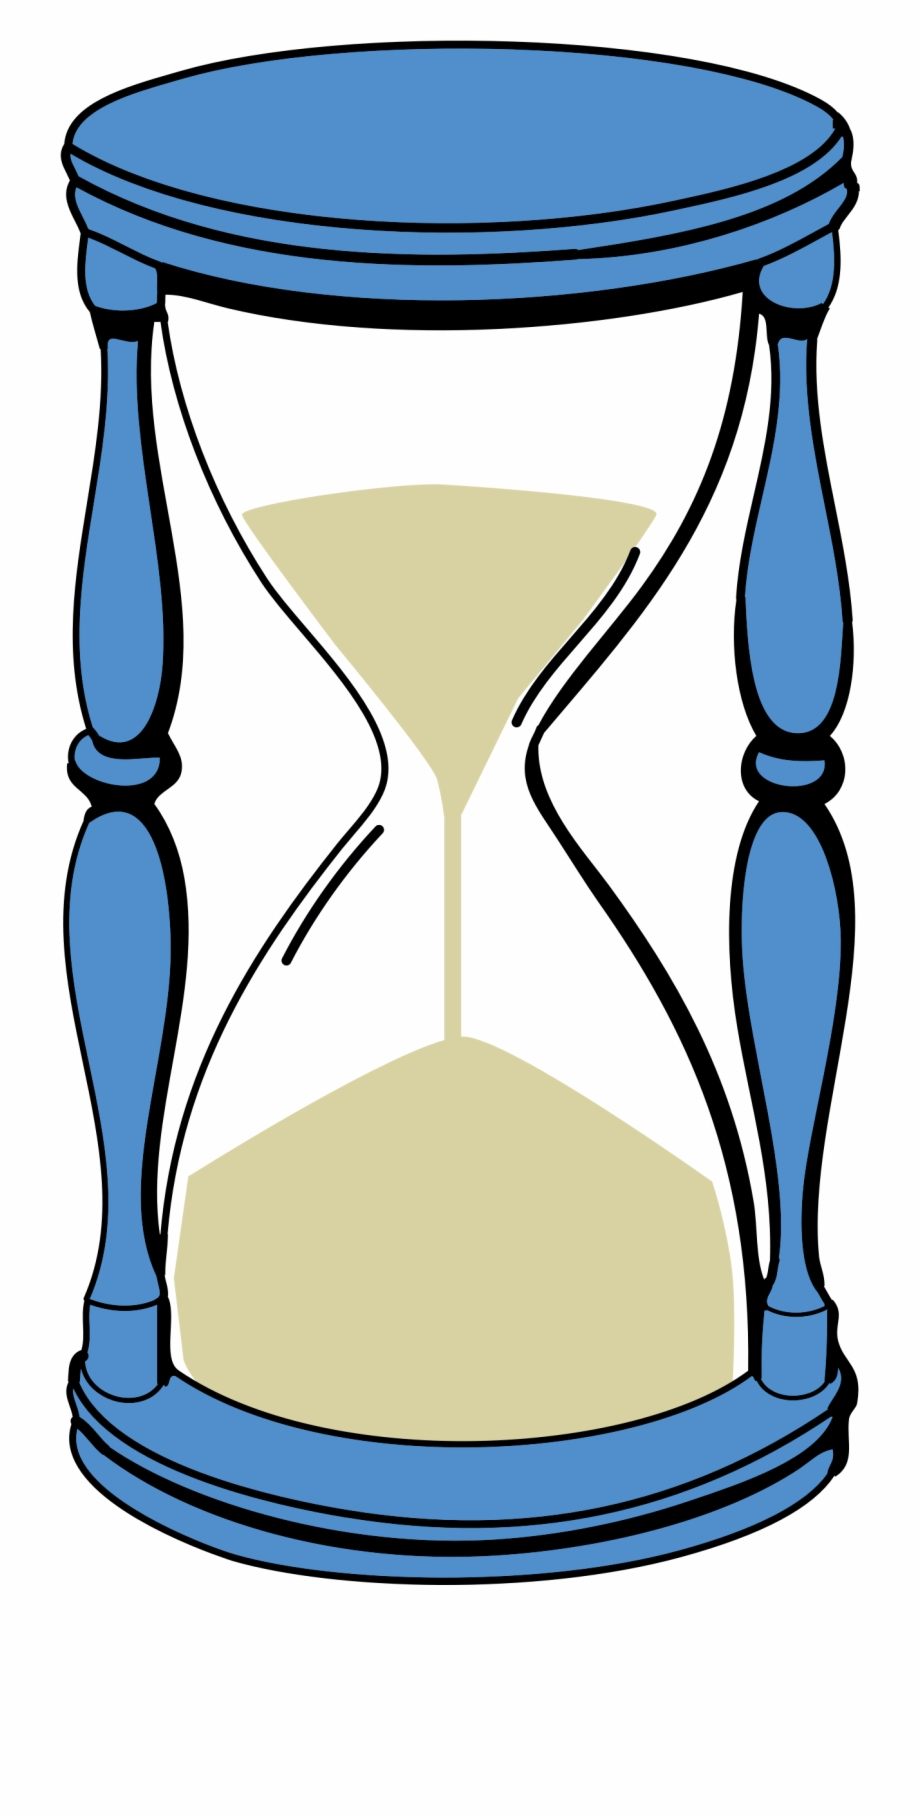 Hourglass clipart sand timer. Time capsule clip art